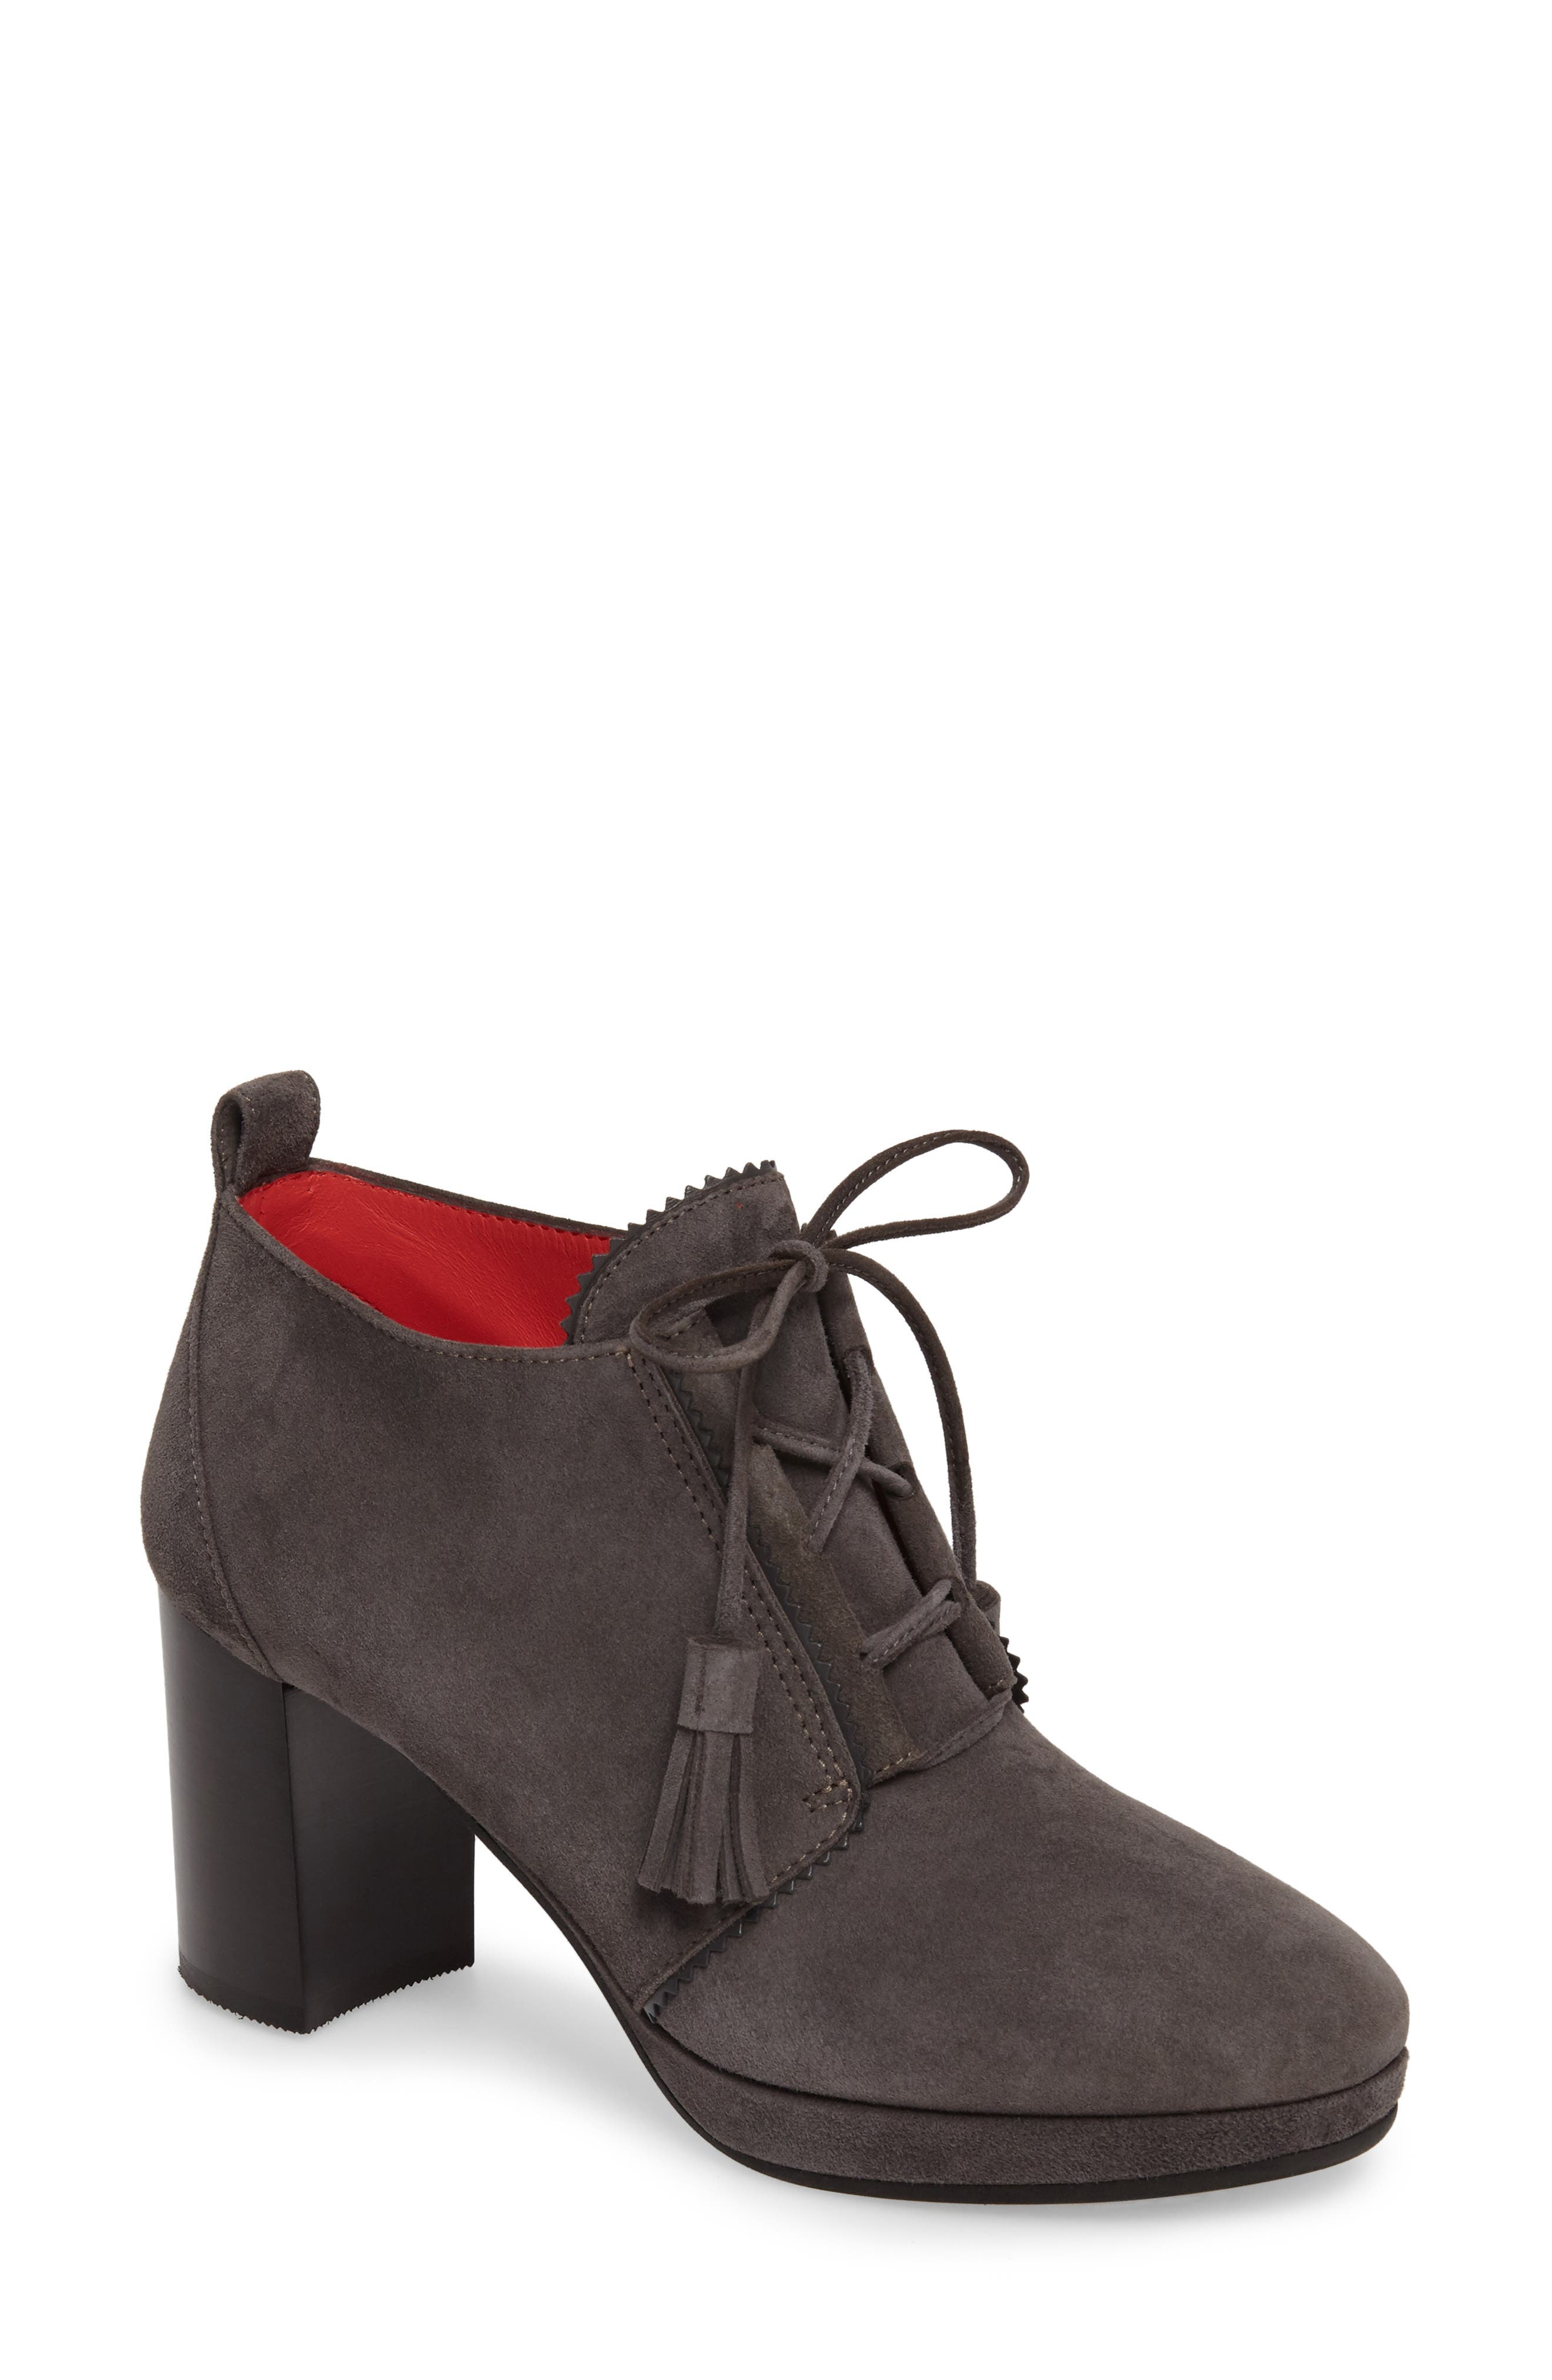 Main Image - Pas de Rouge Lace-Up Platform Bootie (Women)